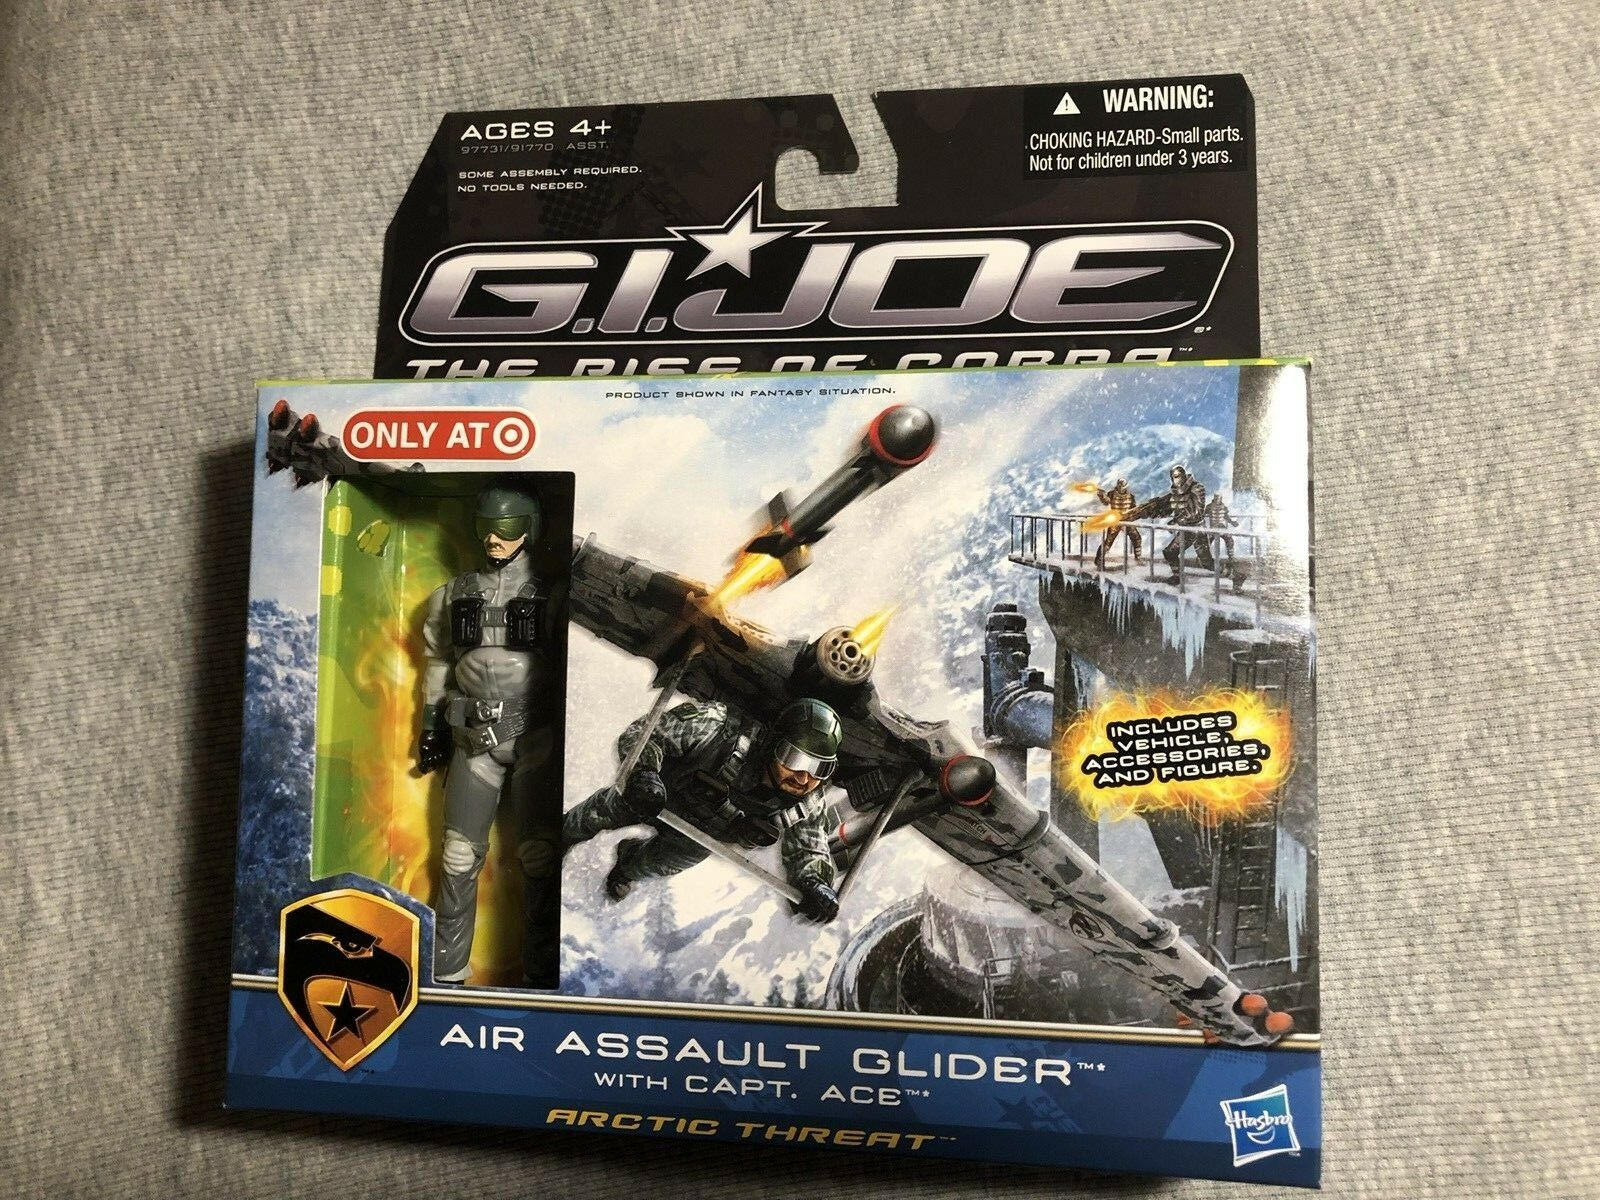 NEW MISB GI JOE ROC Rise of COBRA AIR ASSAULT GLIDER w ACE Target Exclusive